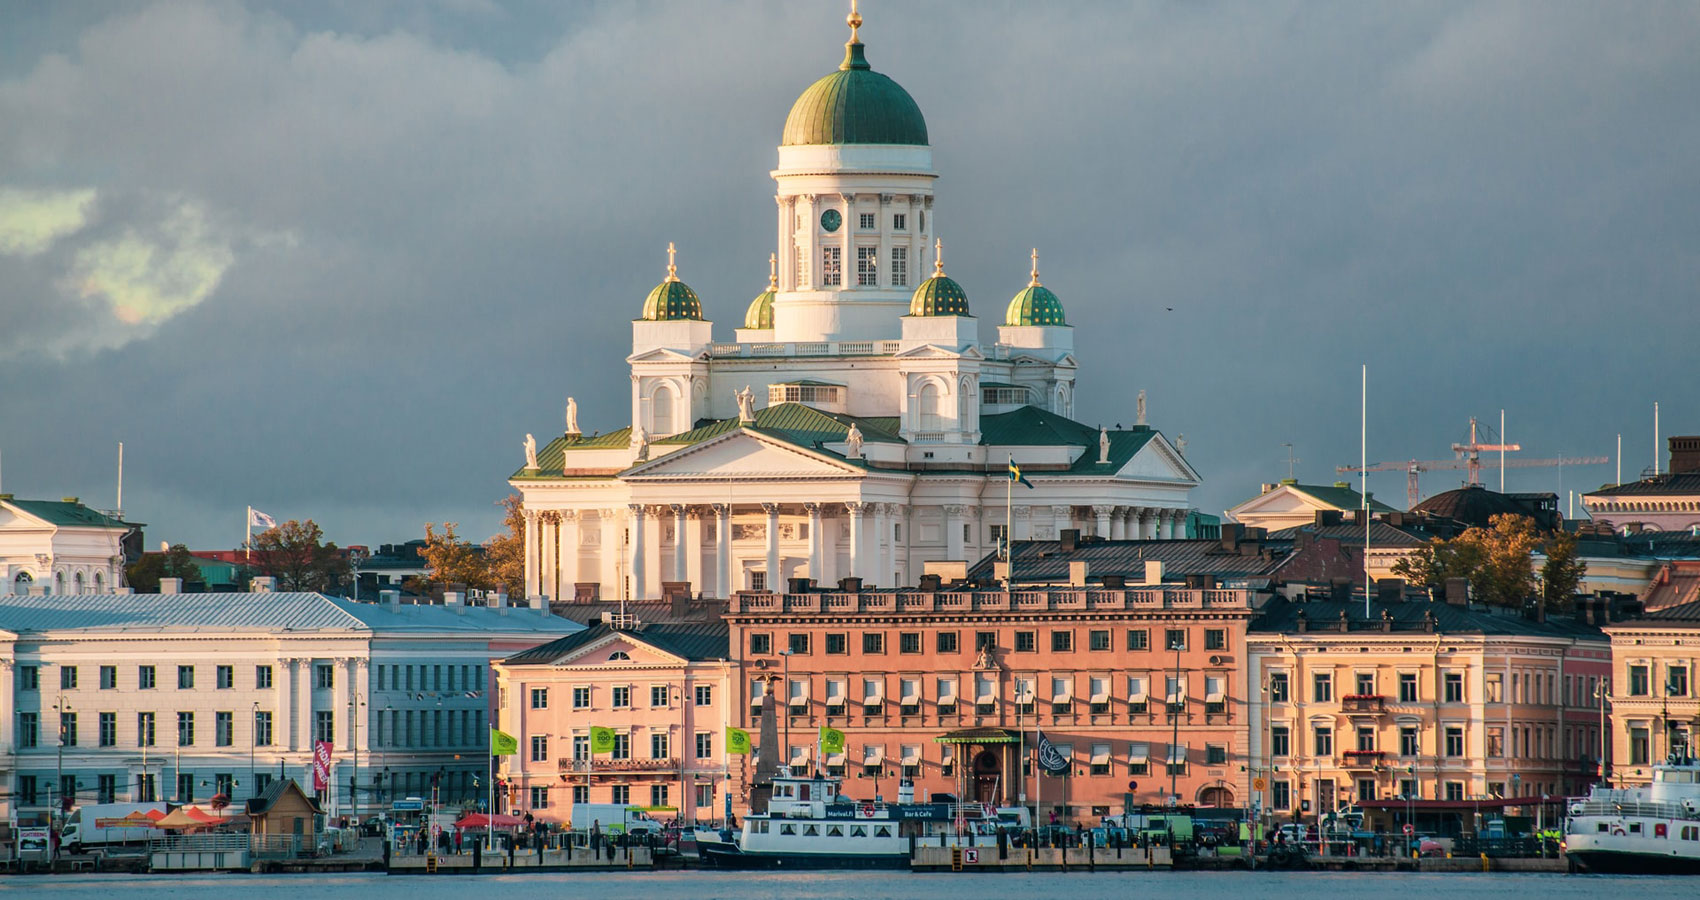 Springtime For Finland (2020), commentary by Paula Puolakka at Spillwords.com